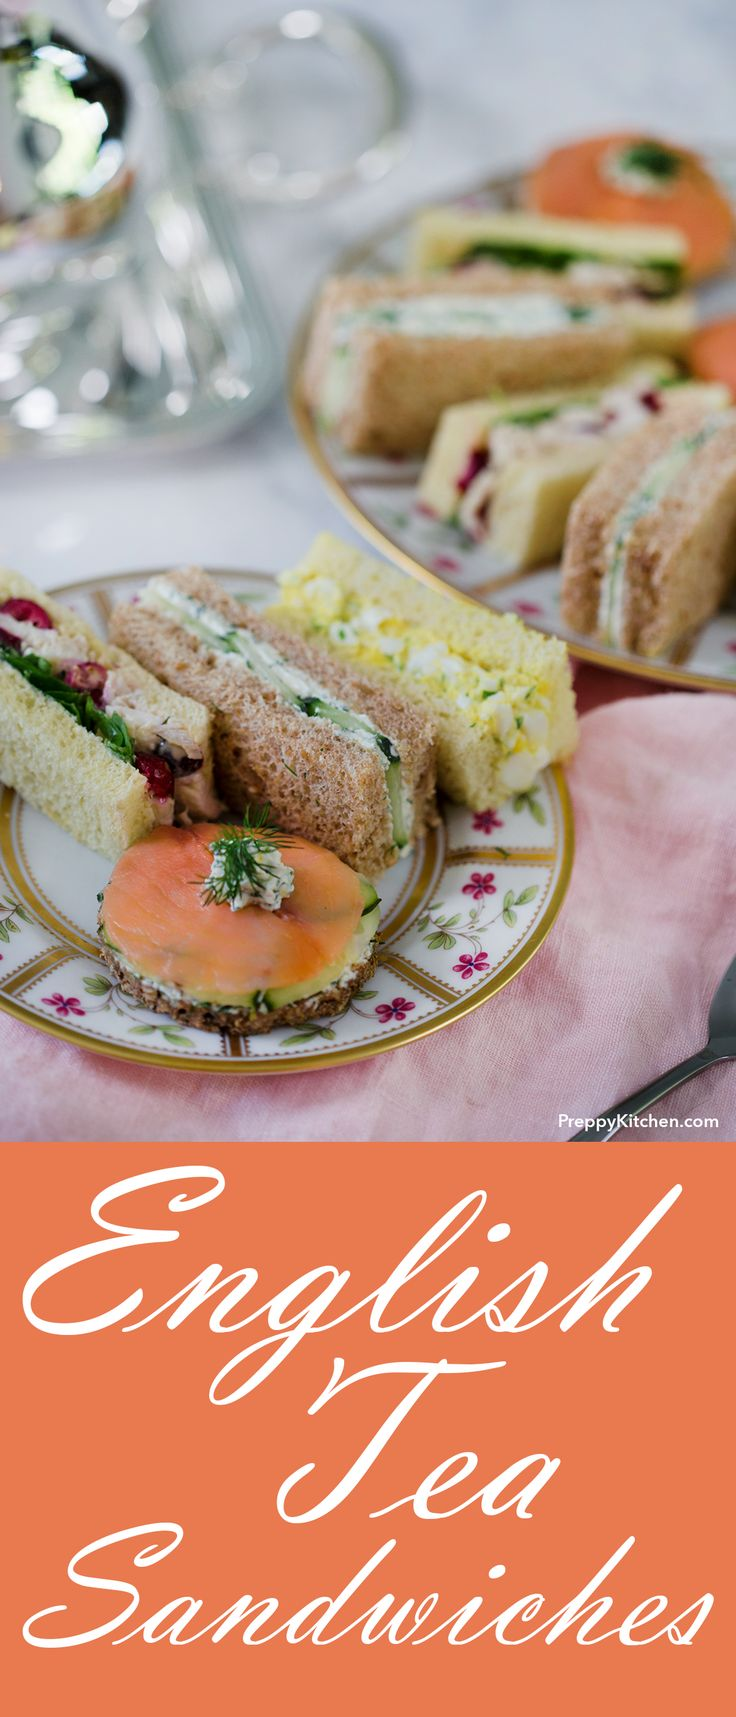 The Best 4 Traditional English Tea Sandwiches